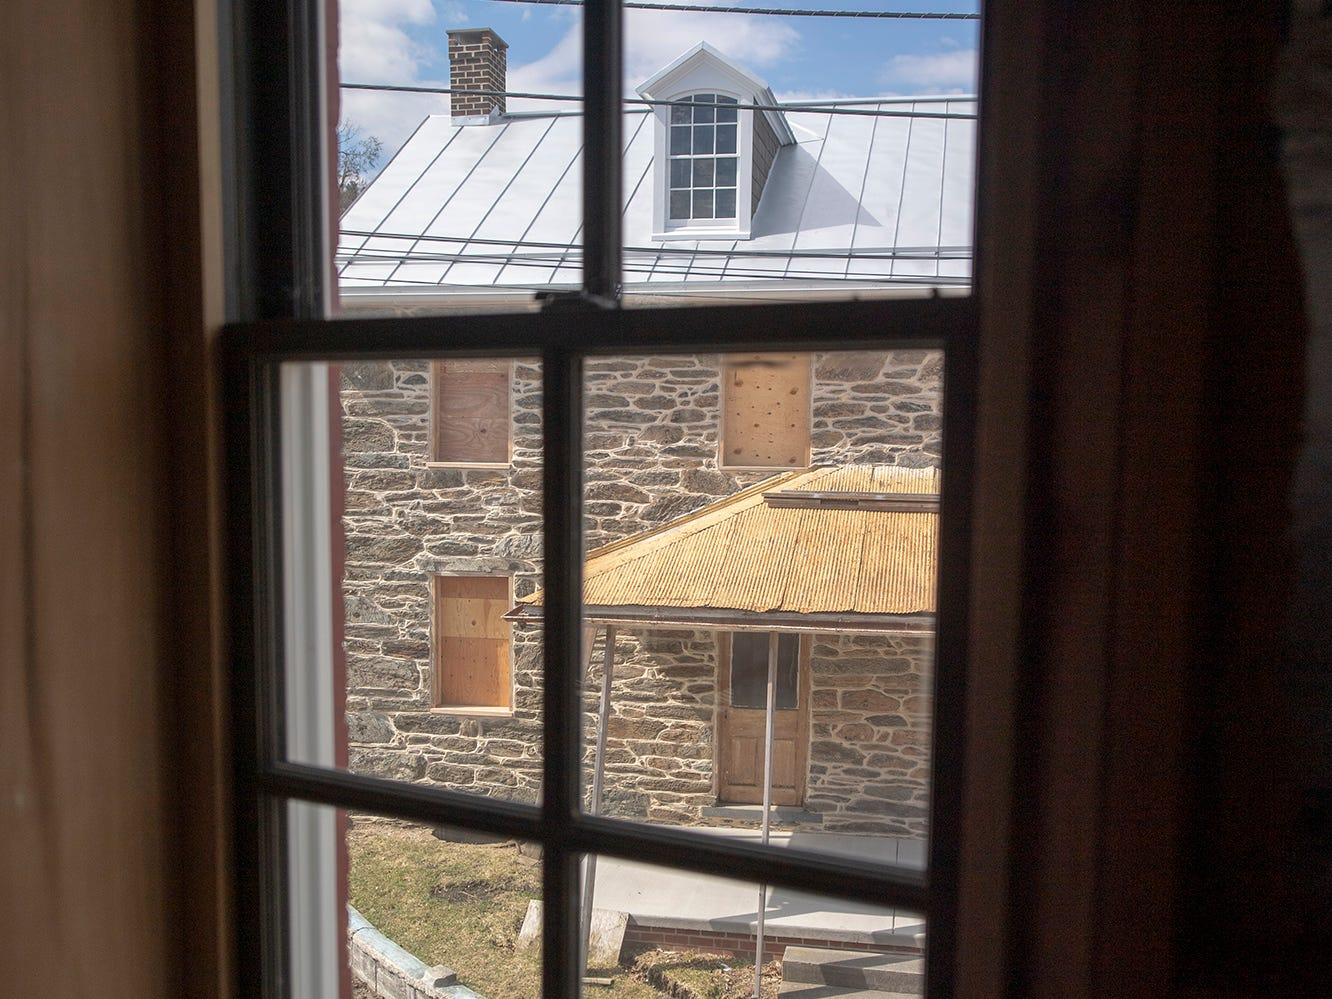 This is looking out a second-floor window of the Seitzland store at the stone building also under renovation.